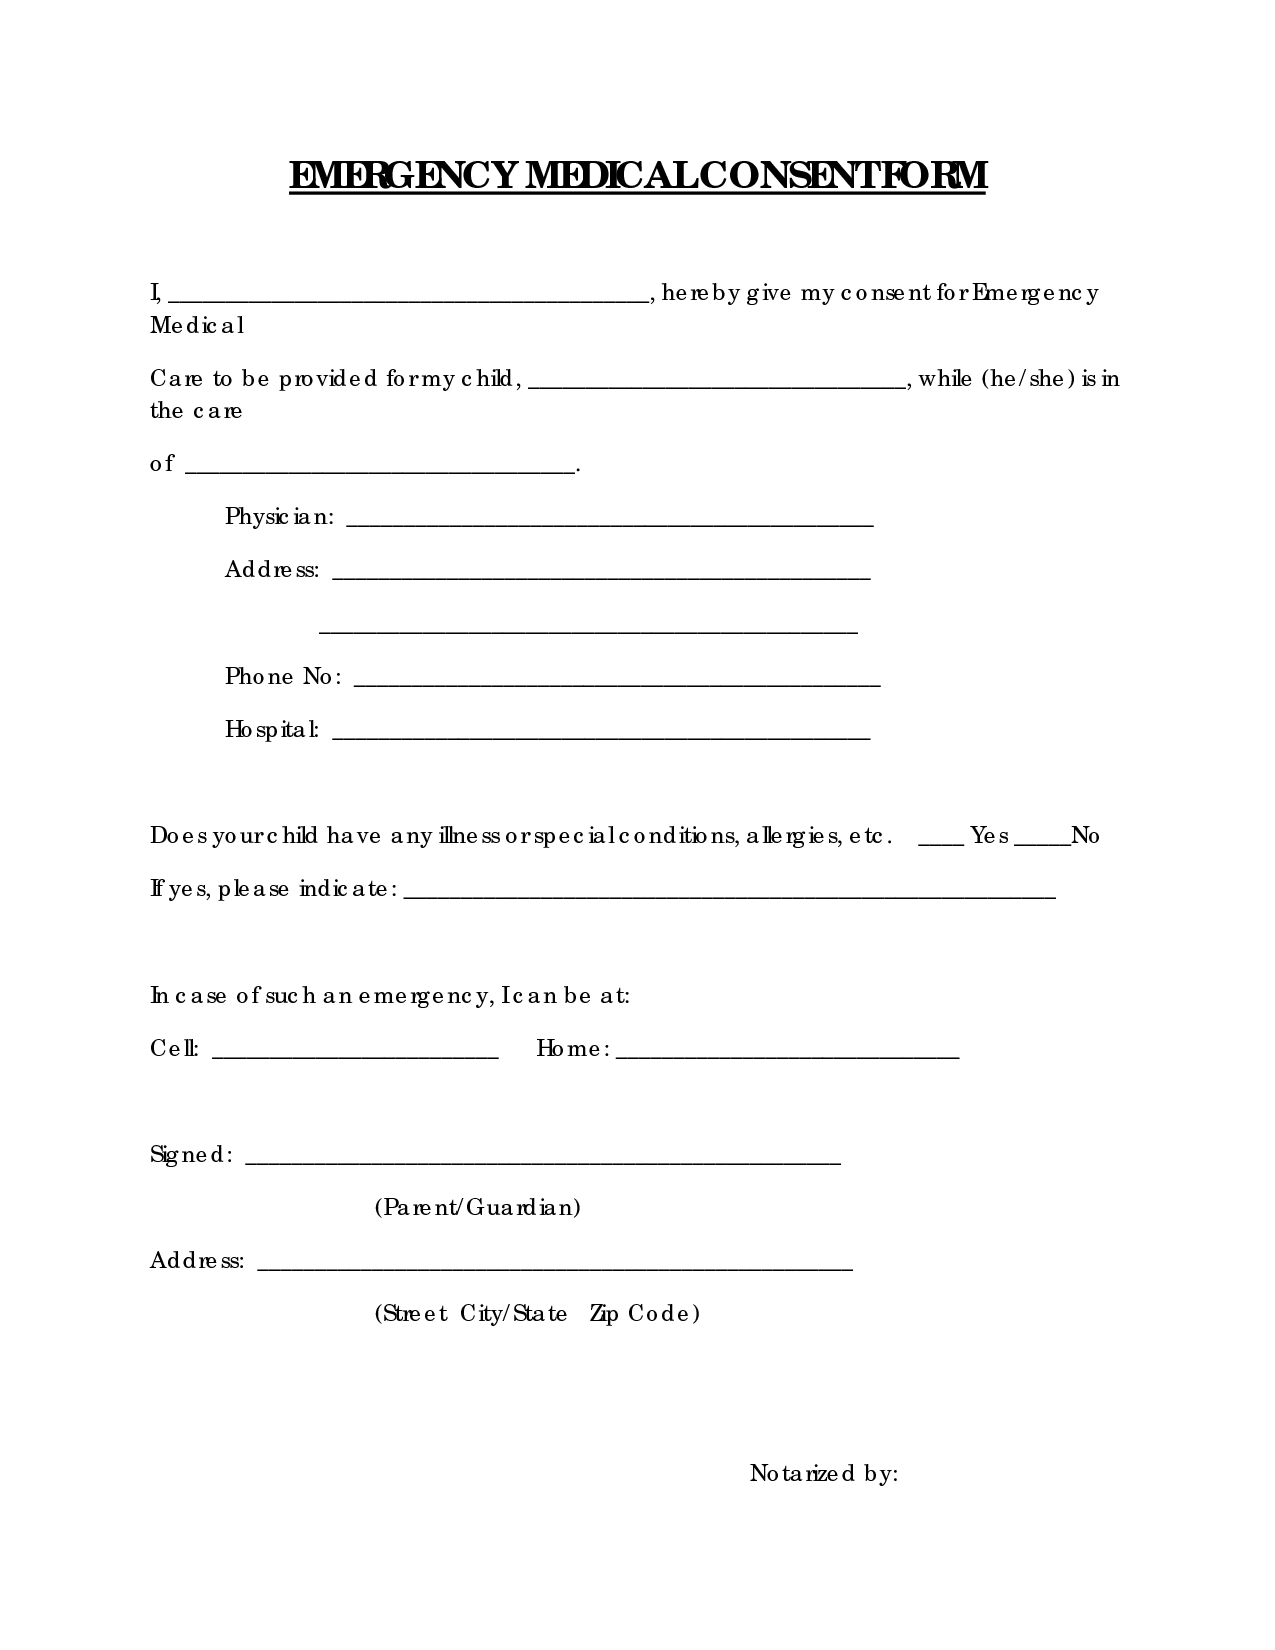 Free Printable Medical Consent Form | EMERGENCY MEDICAL CONSENT FORM I _  Hereby Give My Consent